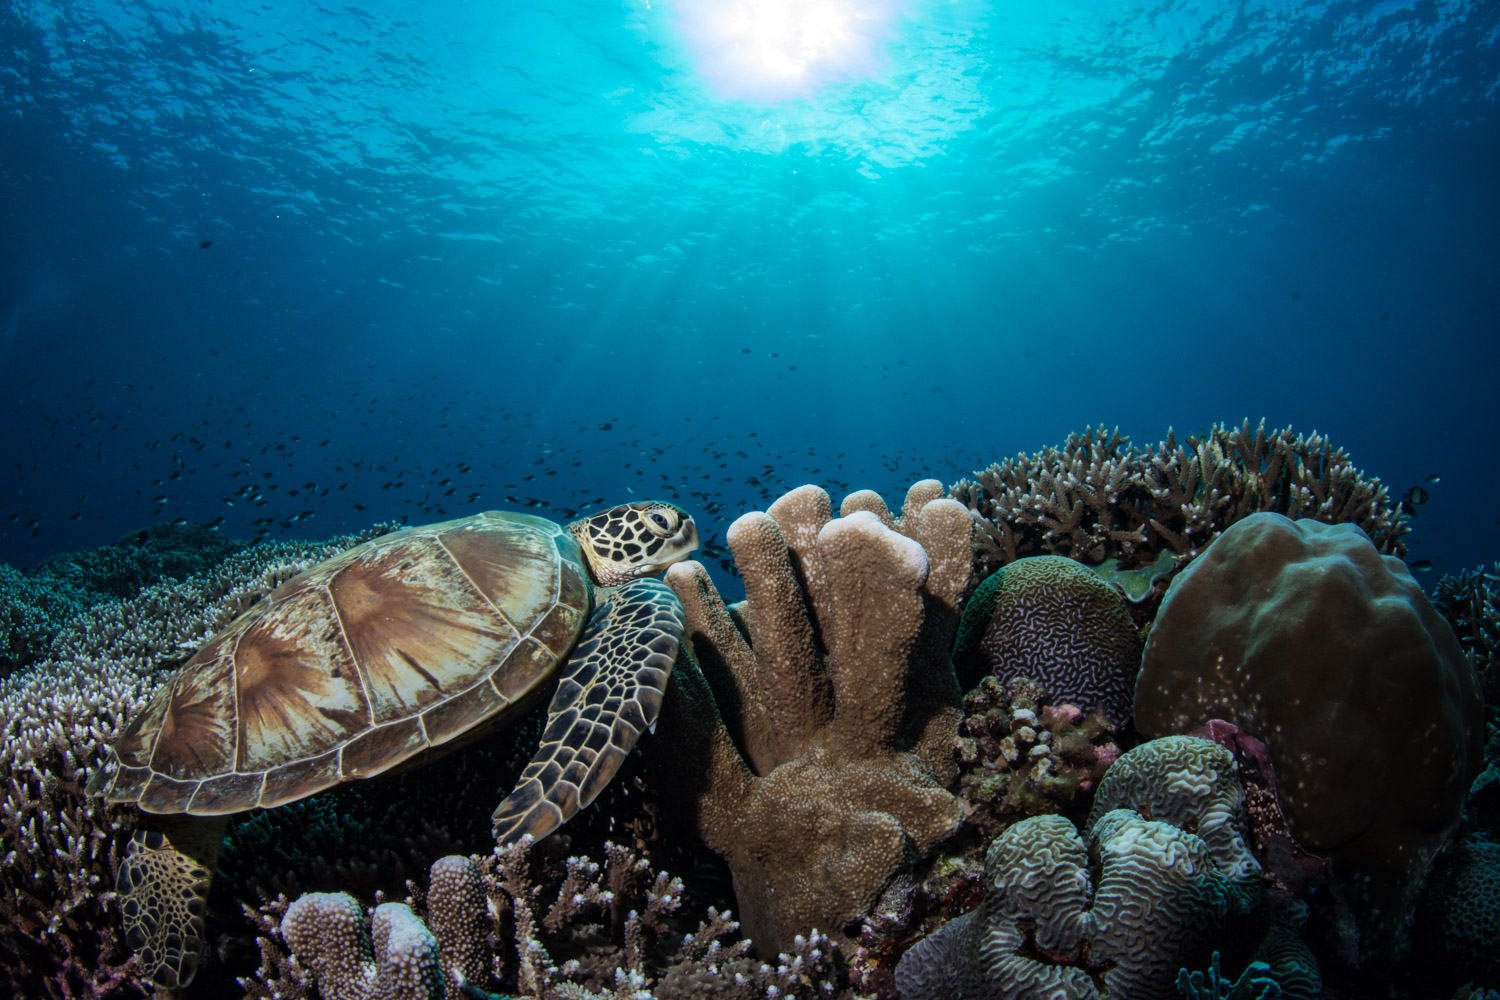 A turtle rests on the reef